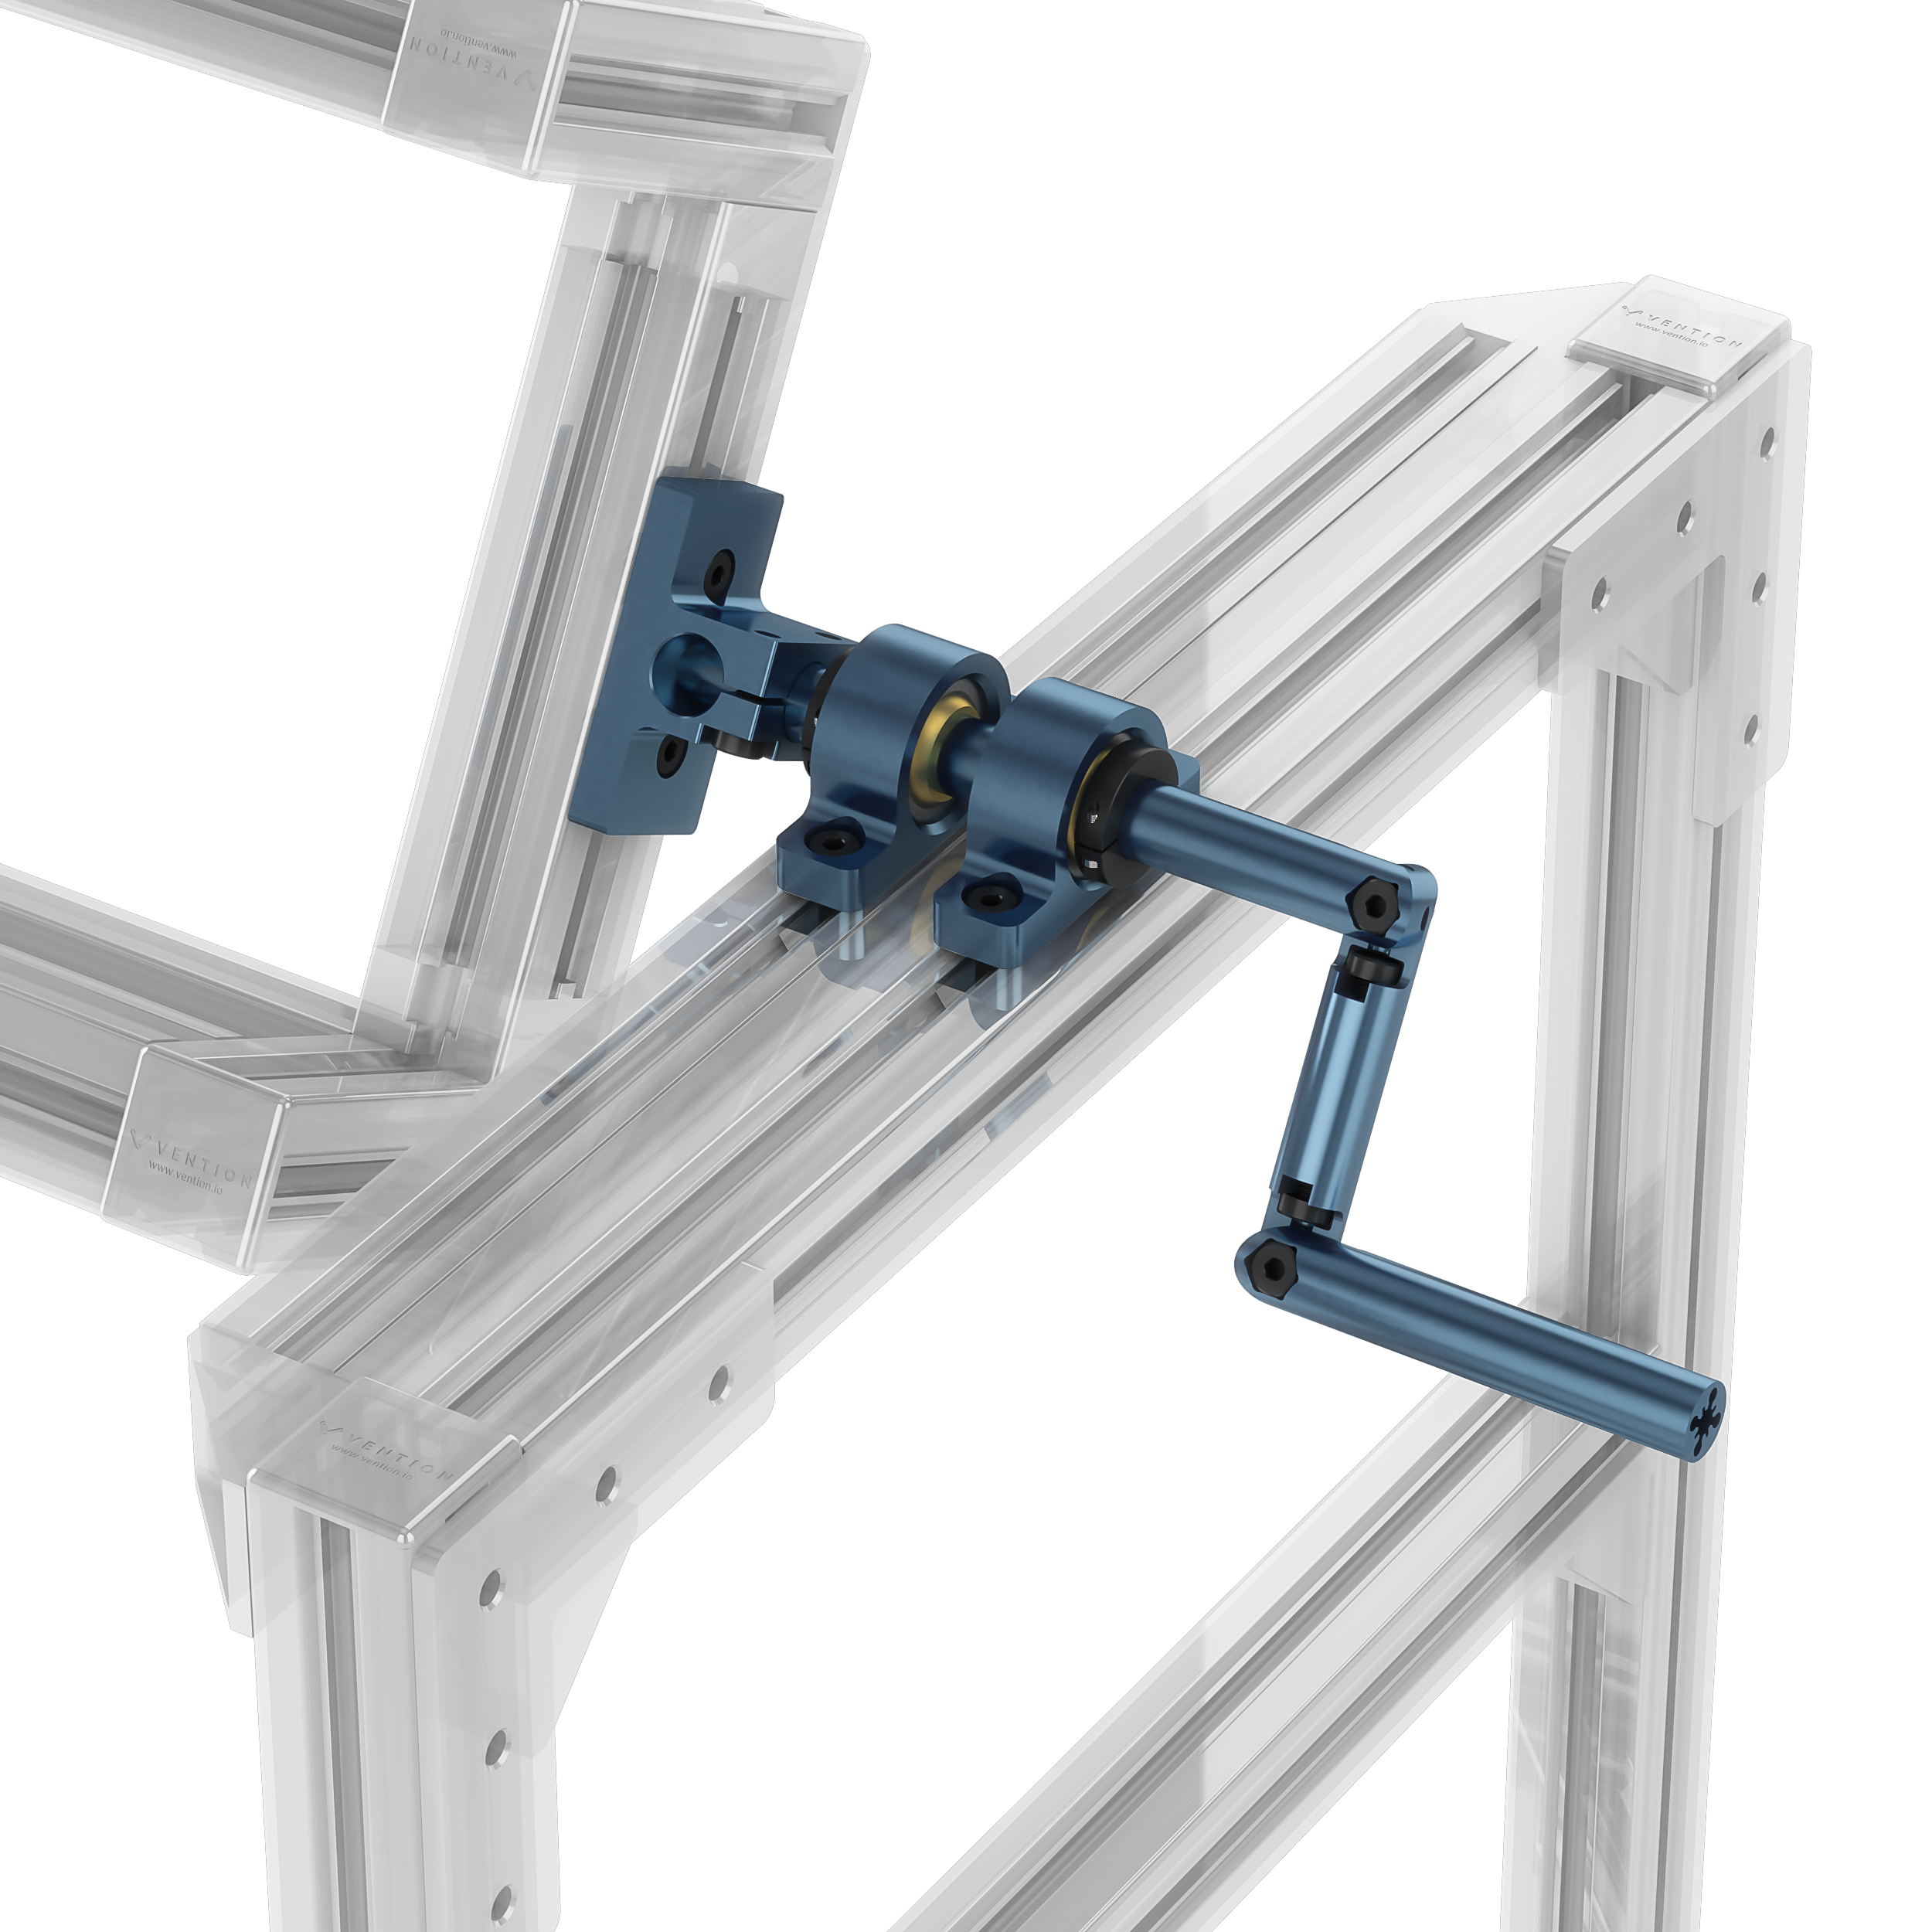 Rotating assembly supported by two pillow bearings.